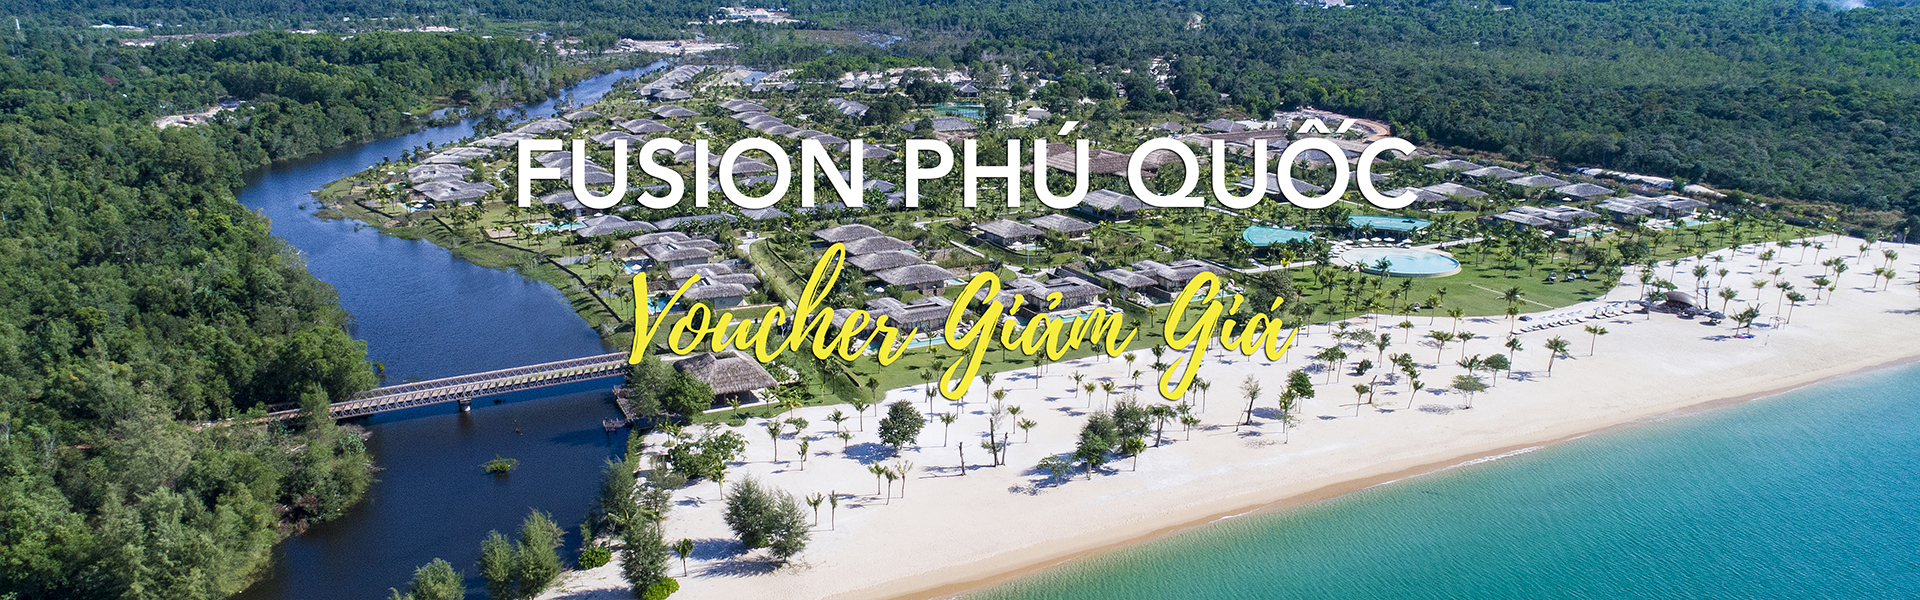 Fusion Resort Phu Quoc Medium